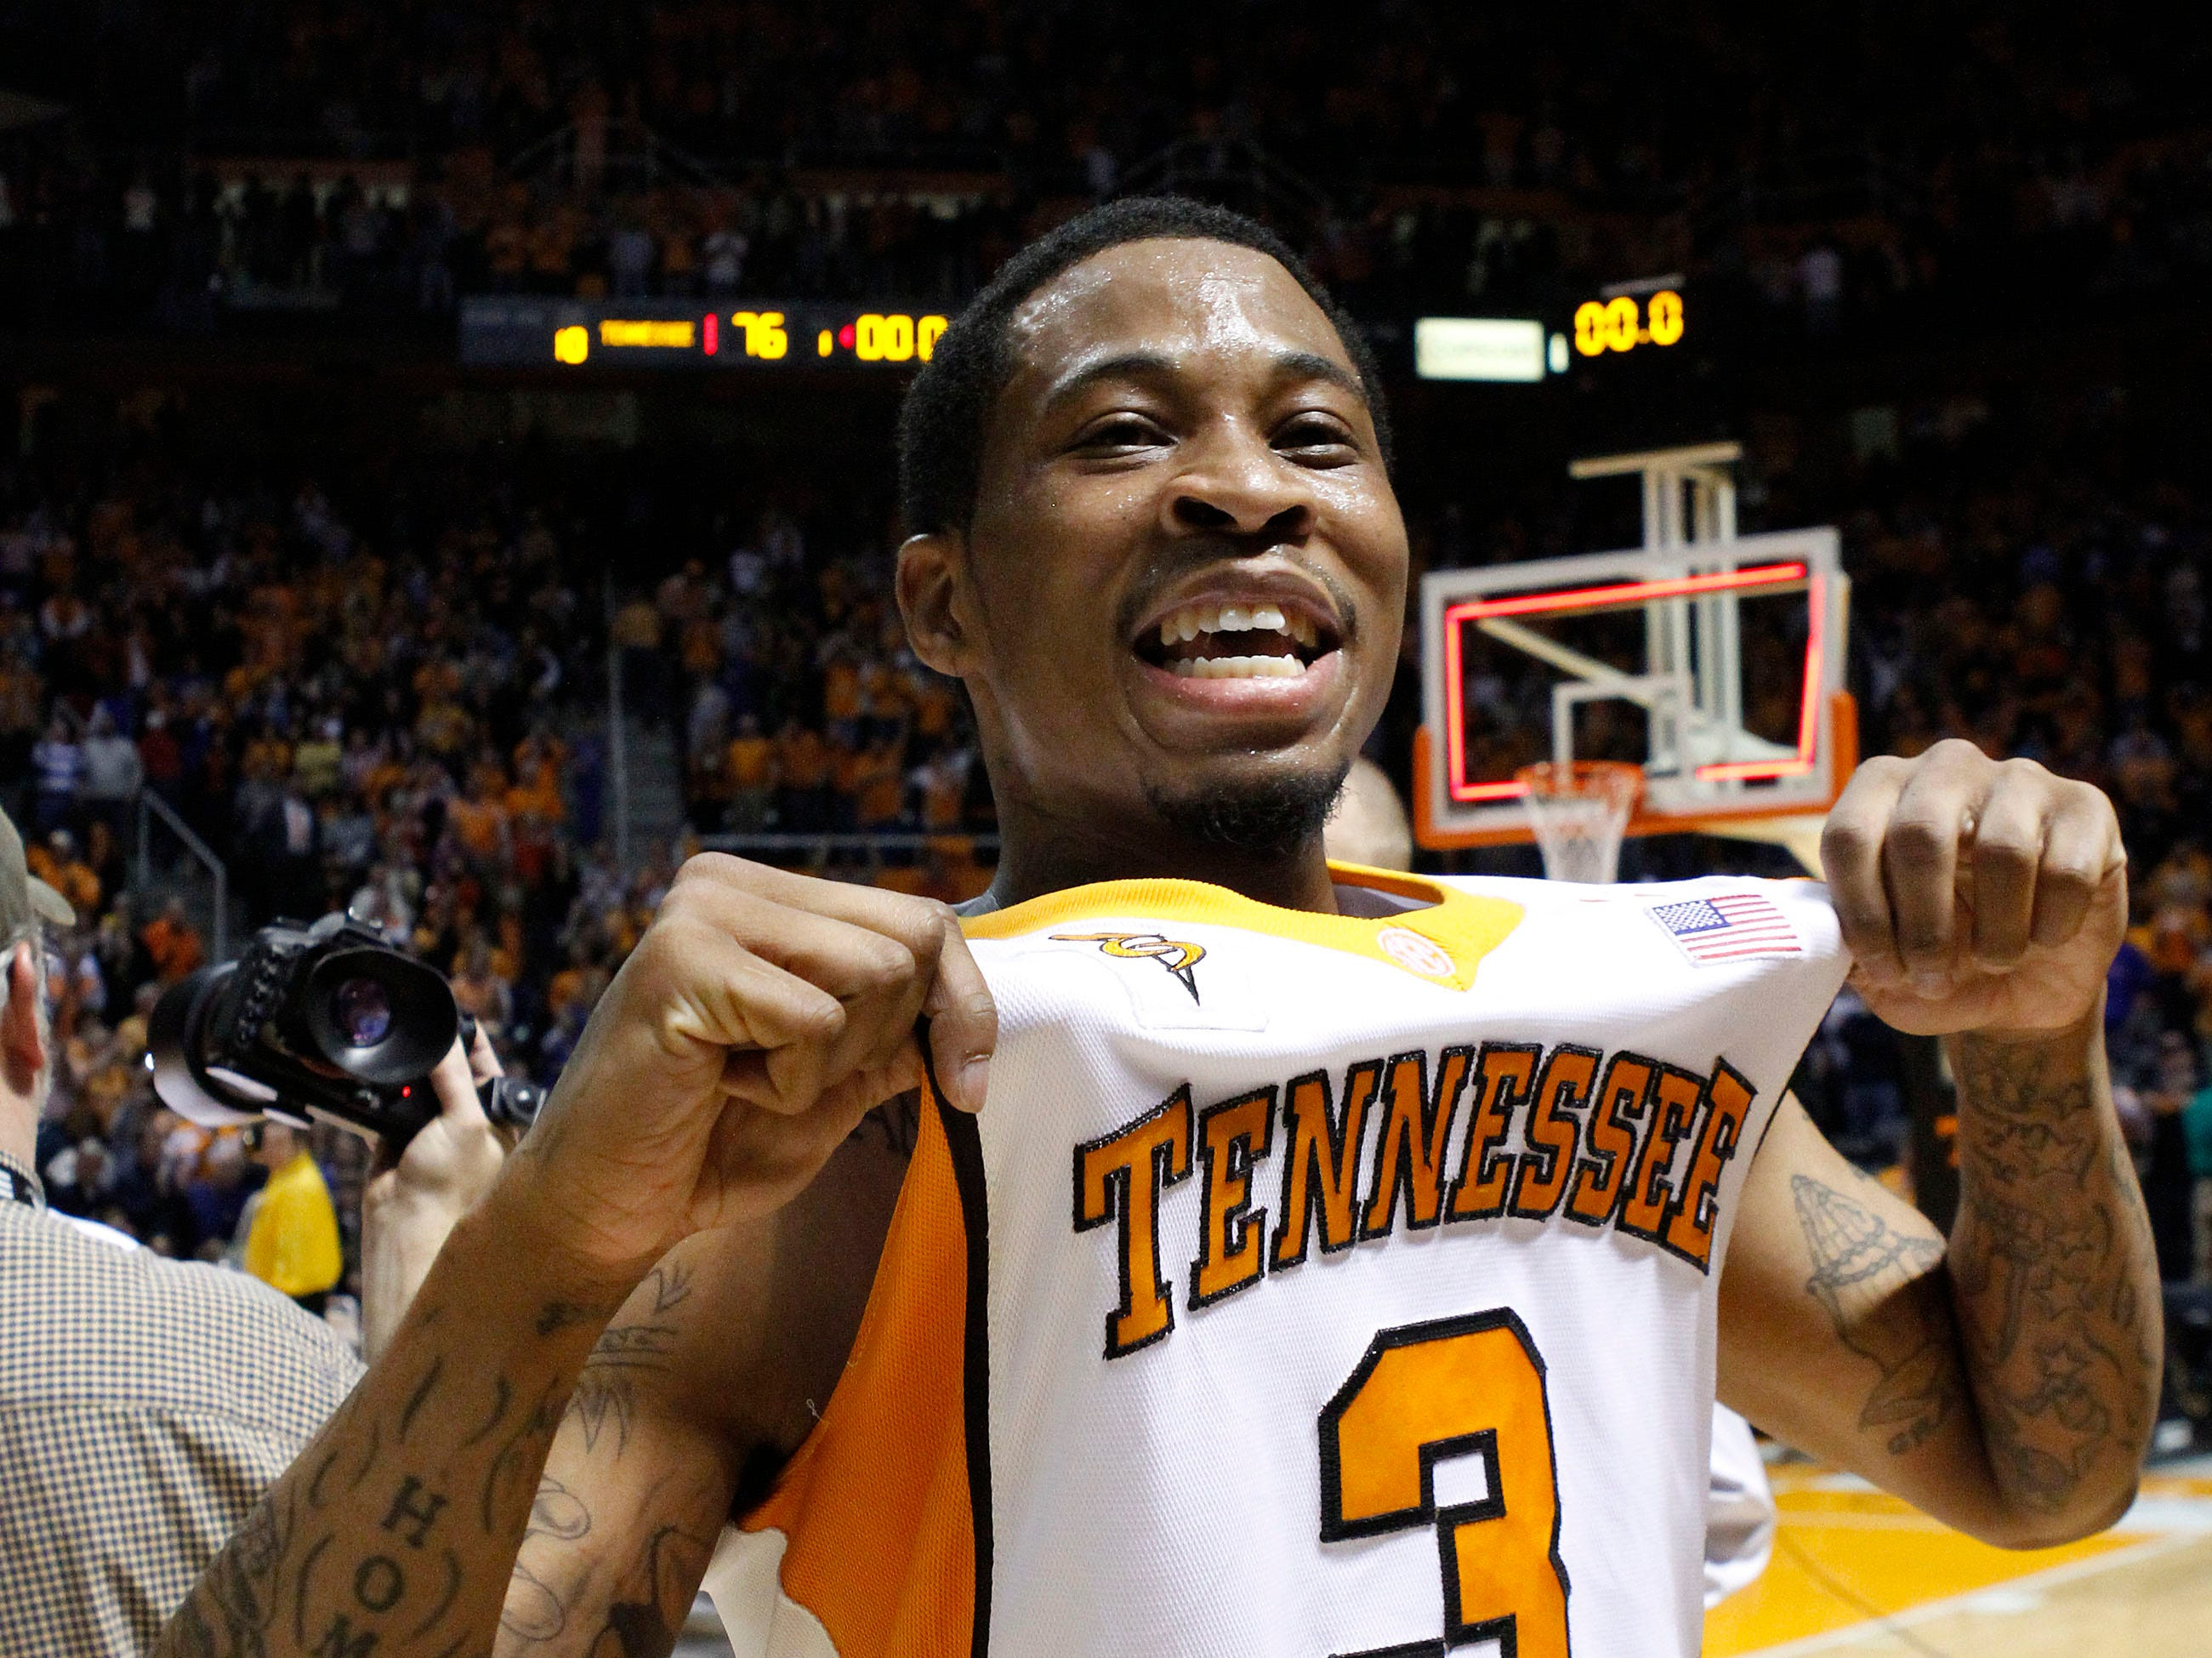 Tennessee's Bobby Maze (3) celebrates the team's win over No. 1-ranked Kansas during an NCAA college basketball game Sunday, Jan. 10, 2010, in Knoxville, Tenn. Tennessee won 76-68. (AP Photo/Lisa Norman-Hudson)